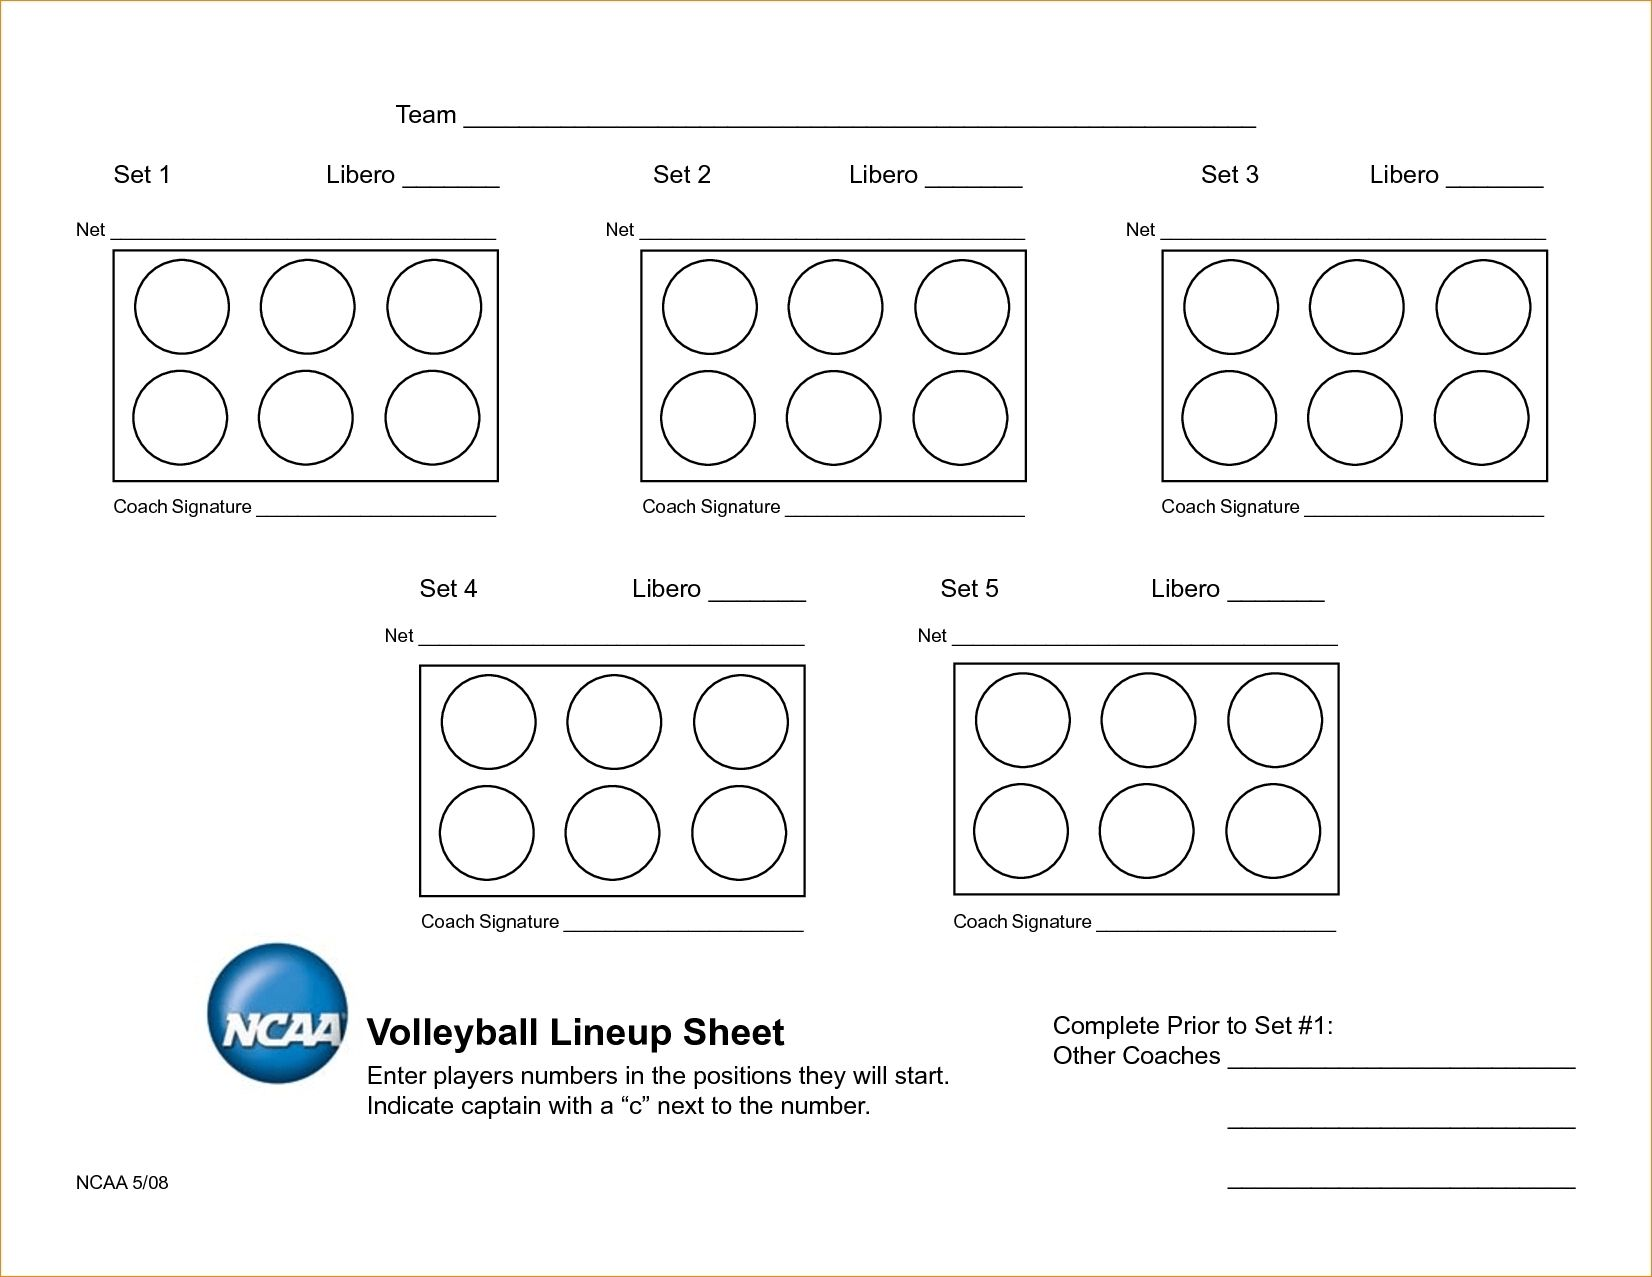 Volleyball Lineup Sheets Printable Shareitdownloadpc With Regard To Volleyball Lineup Sheets Printable 1 Volleyball Score Sheet Volleyball Scoring Volleyball